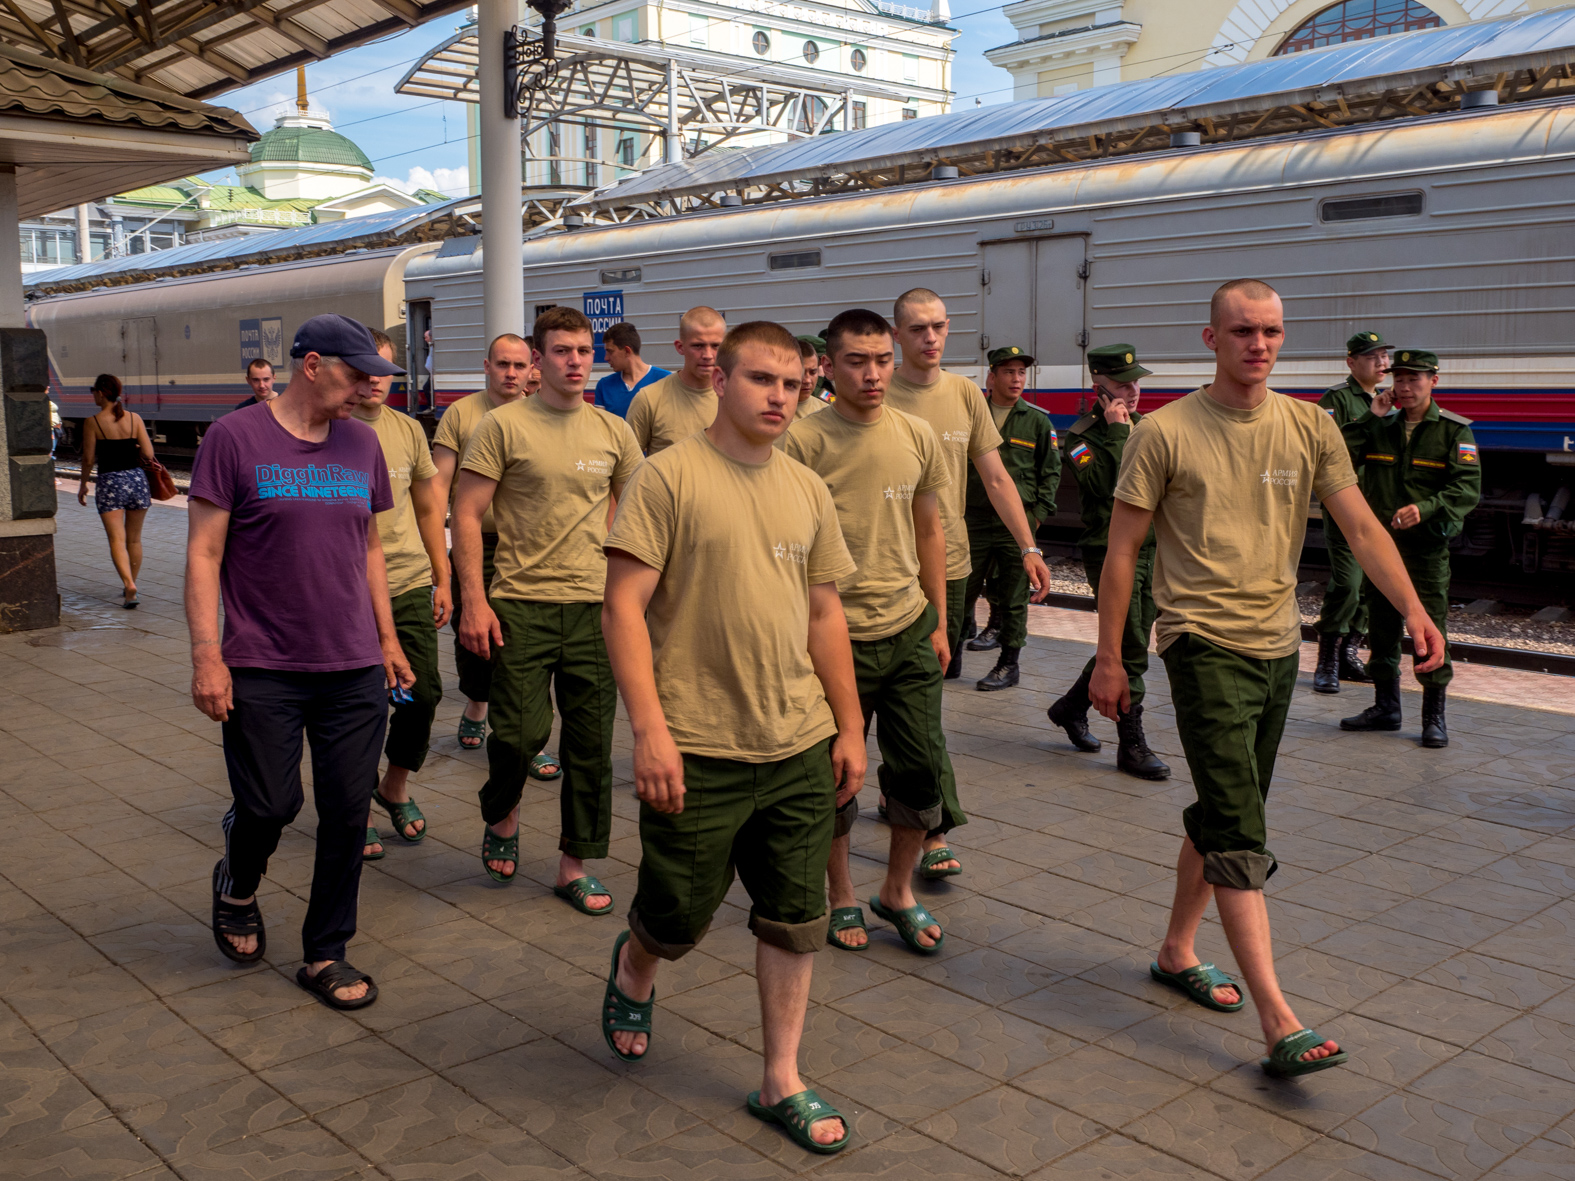 Army recruits head back on board the Trans-Siberian Railway from Moscow-Vladivostok. Spanning a length of 9,289km, it's the longest uninterrupted single country train journey in the world. It has connected Moscow with Vladivostok since 1916, and is still being expanded. It was built between 1891 and 1916 under the supervision of Russian government ministers personally appointed by Tsar Alexander III and his son, the Tsarevich Nicholas (later Tsar Nicholas II).